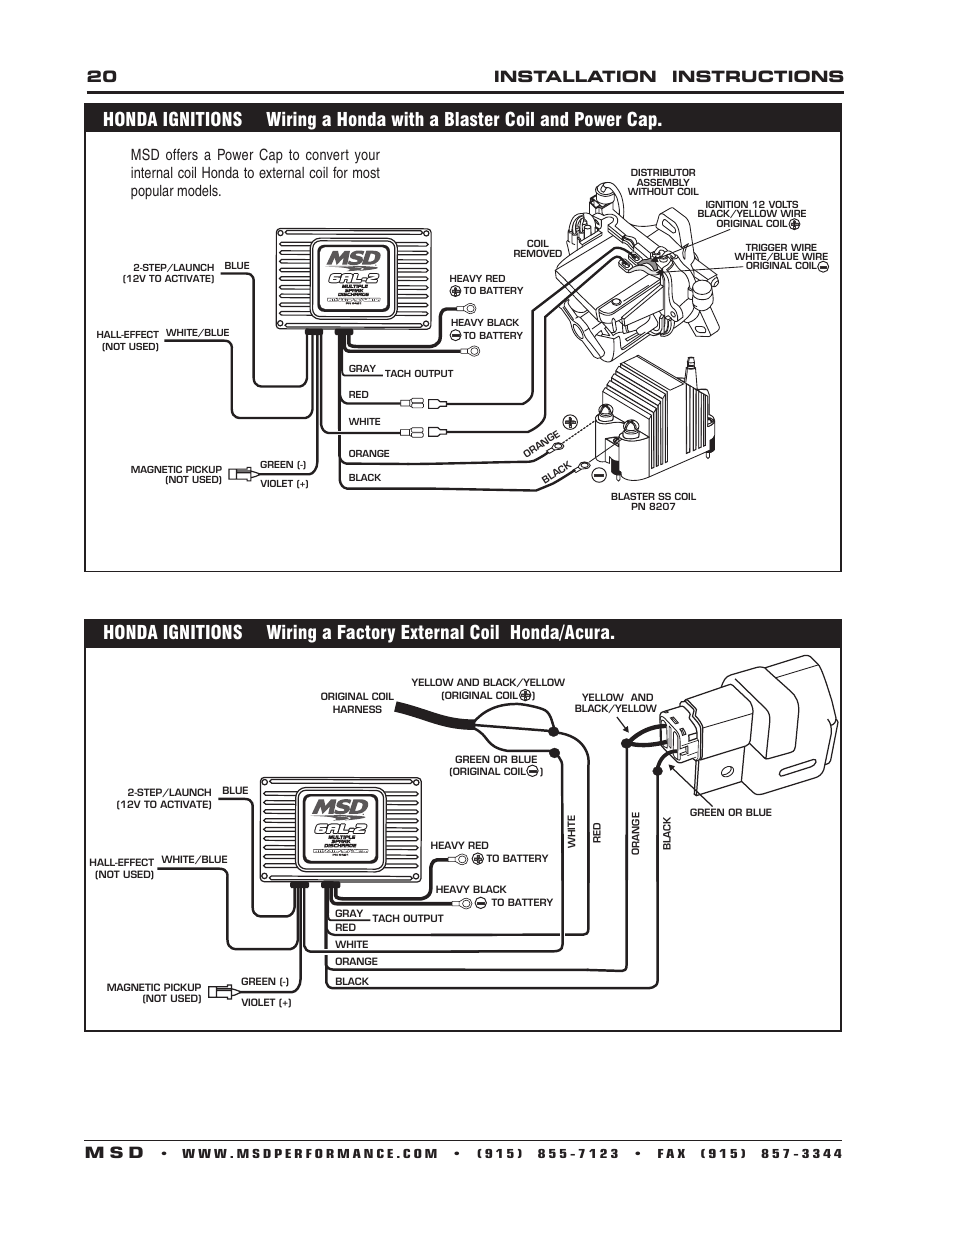 Snap Ford Msd Ignition Wiring Diagram 32 Images Dis 4 7al 22 Diagrams Mifinderco